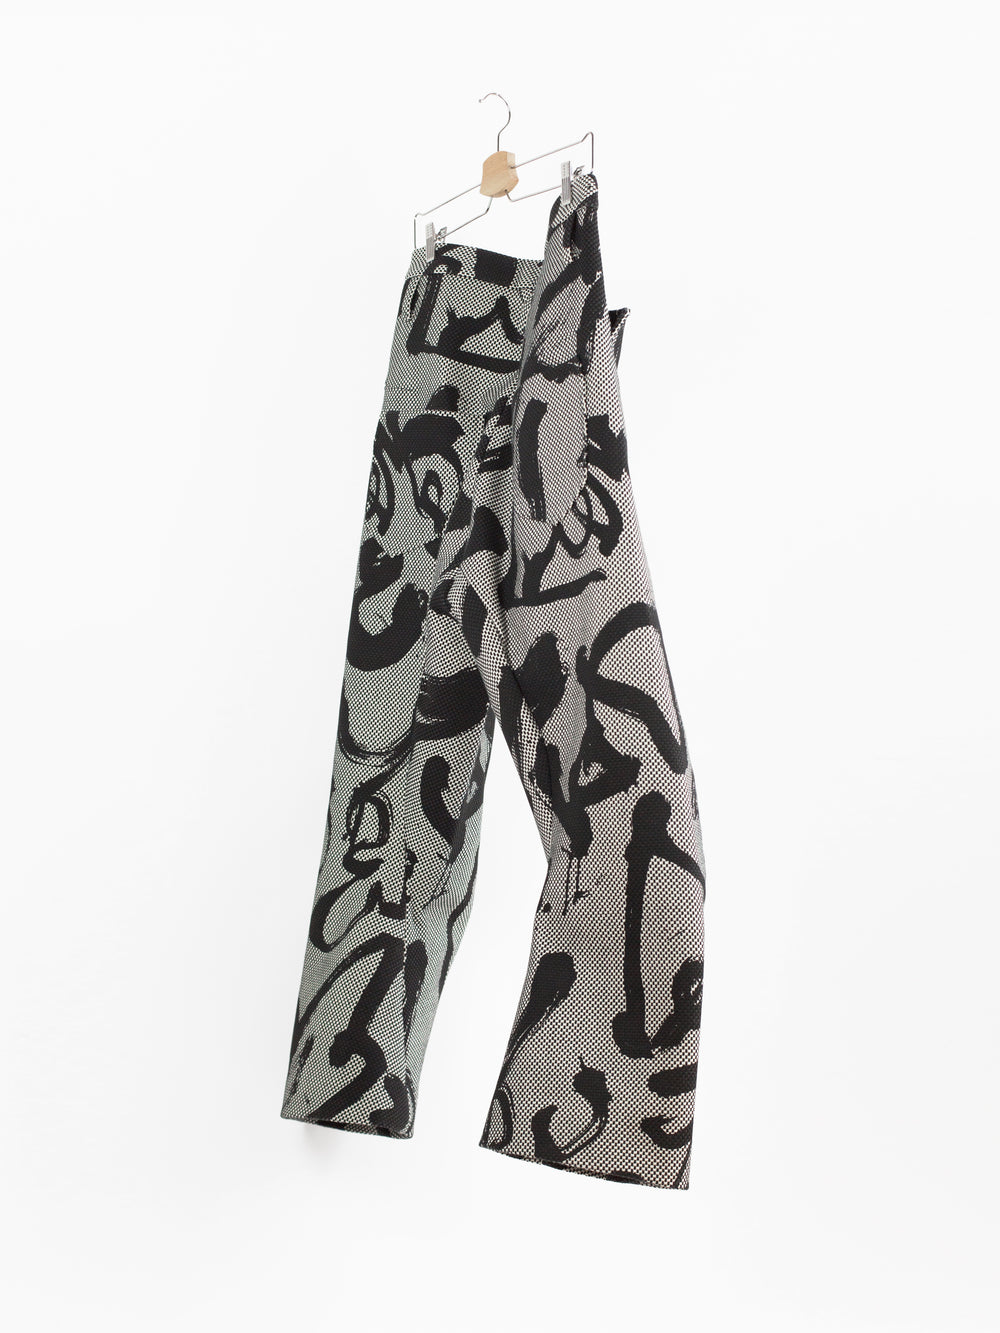 Kozaburo SS19 Calligracamo Sashiko 3D Tailored Trousers